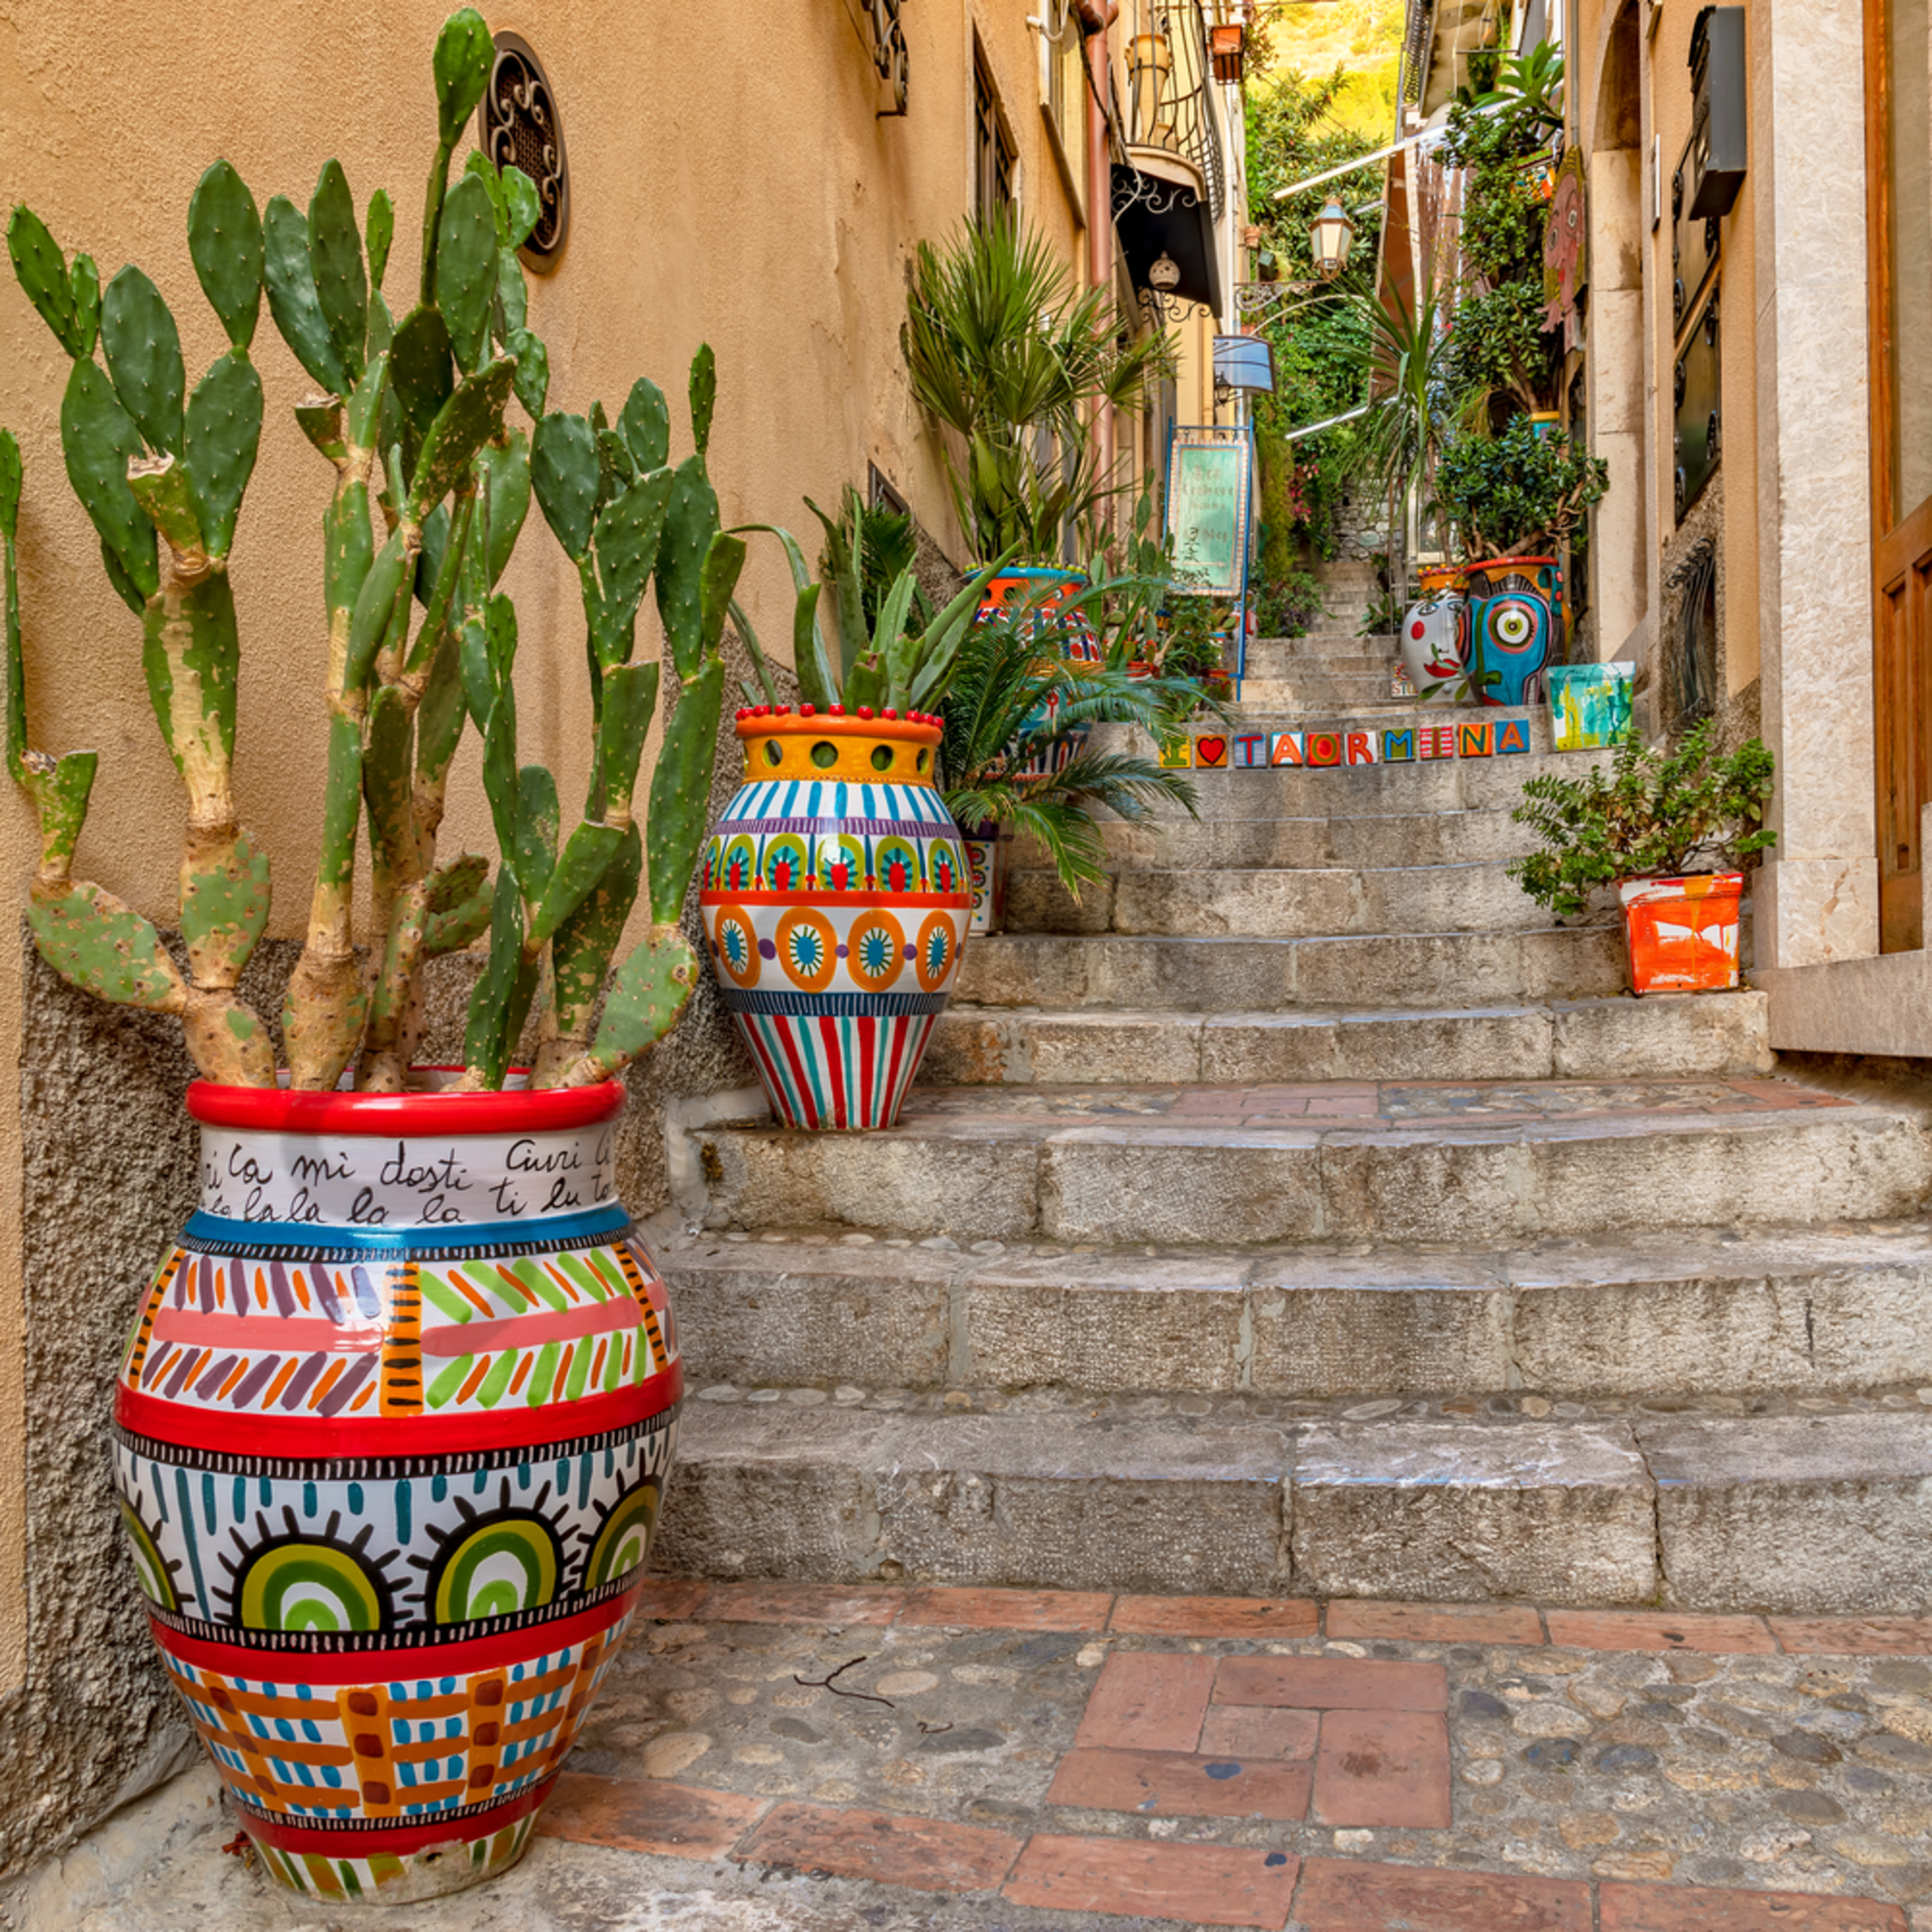 Pottery and stairs taormina sicily italy jzqqf1